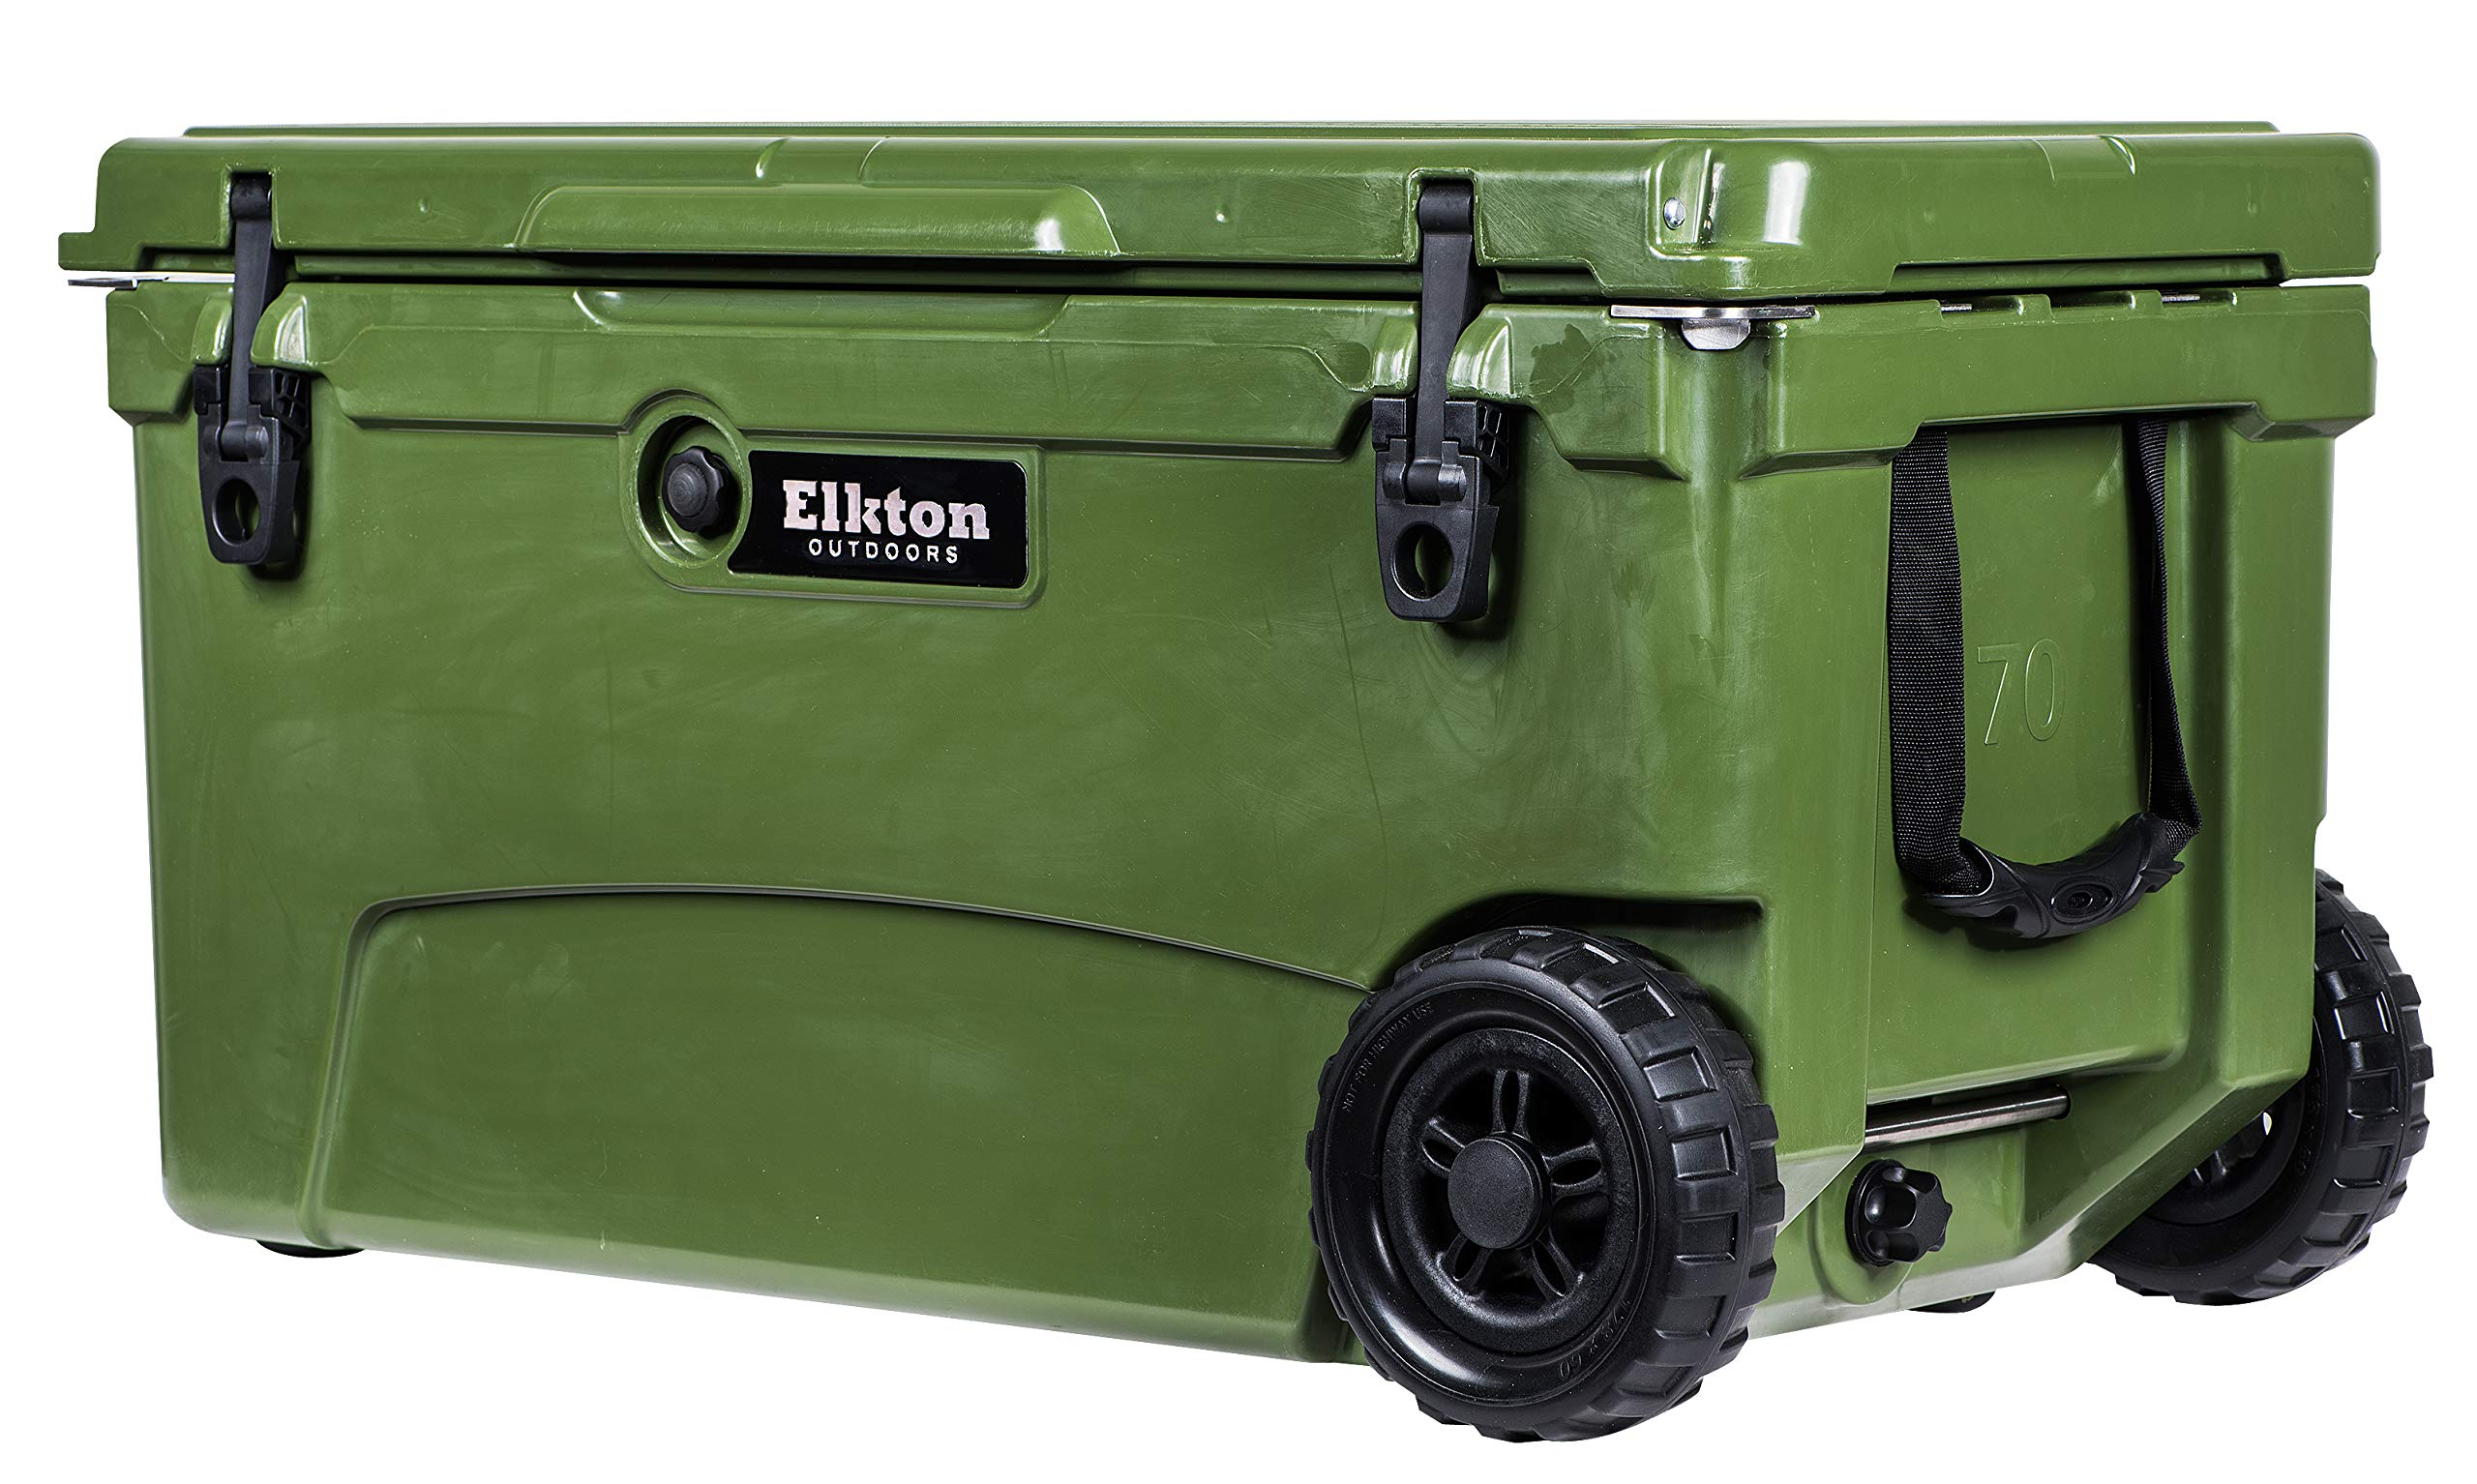 Elkton Outdoors Ice Chest. Heavy Duty, High Performance Roto-Molded Commercial Grade Insulated Cooler, 70-Quart